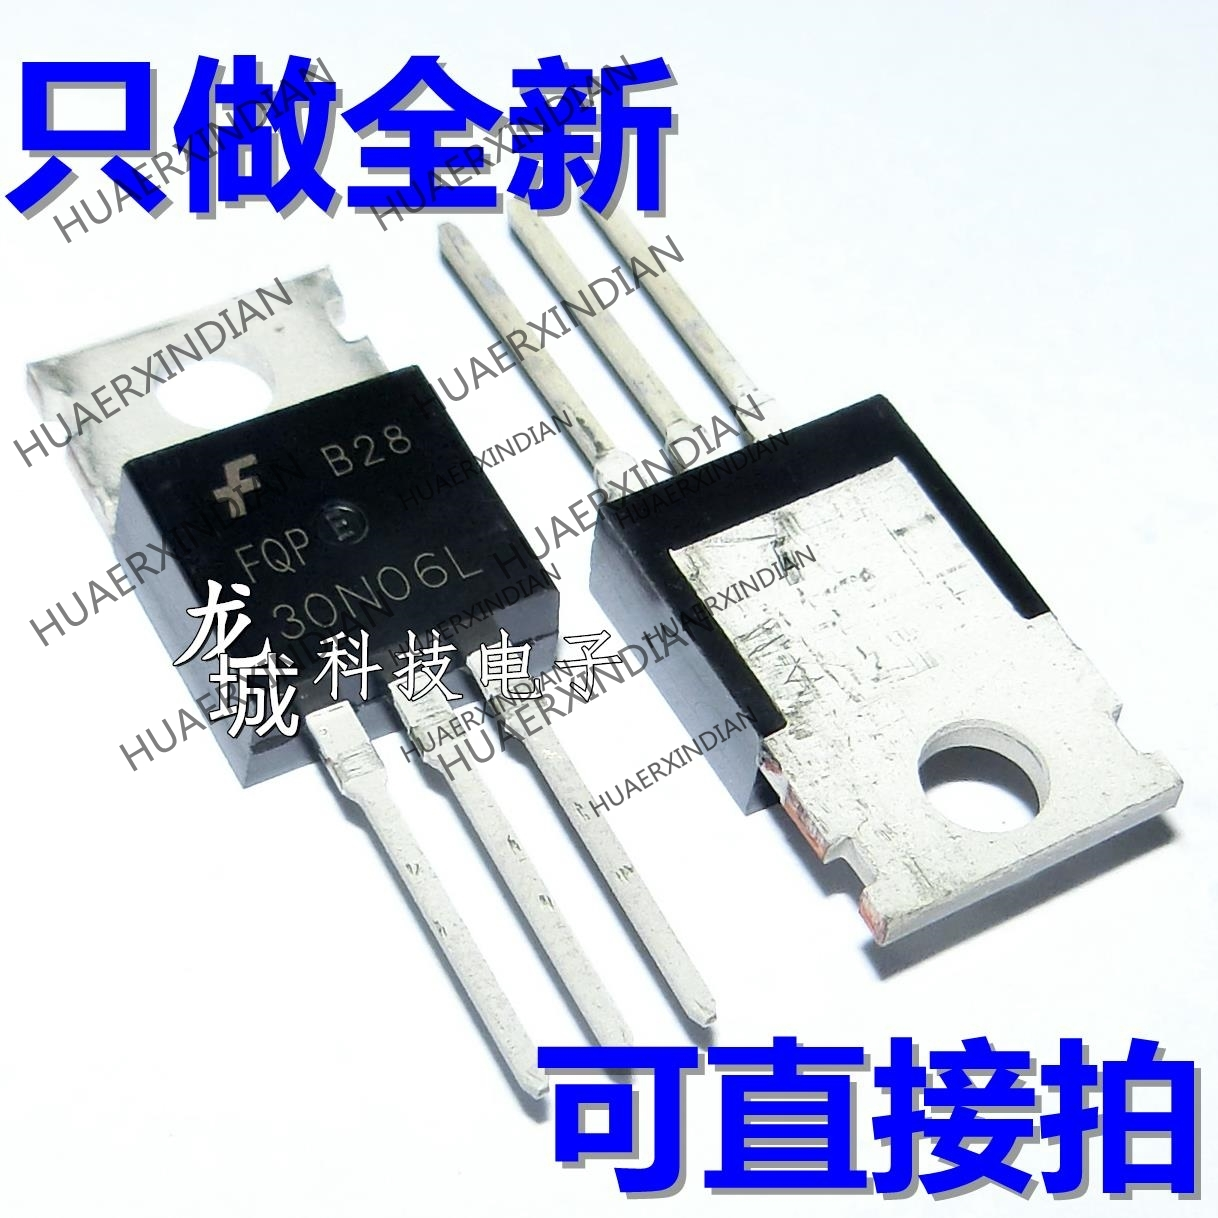 10PCS/LOT NEW  FQP30N06L TO-220 NPN 30A 60V  In Stock